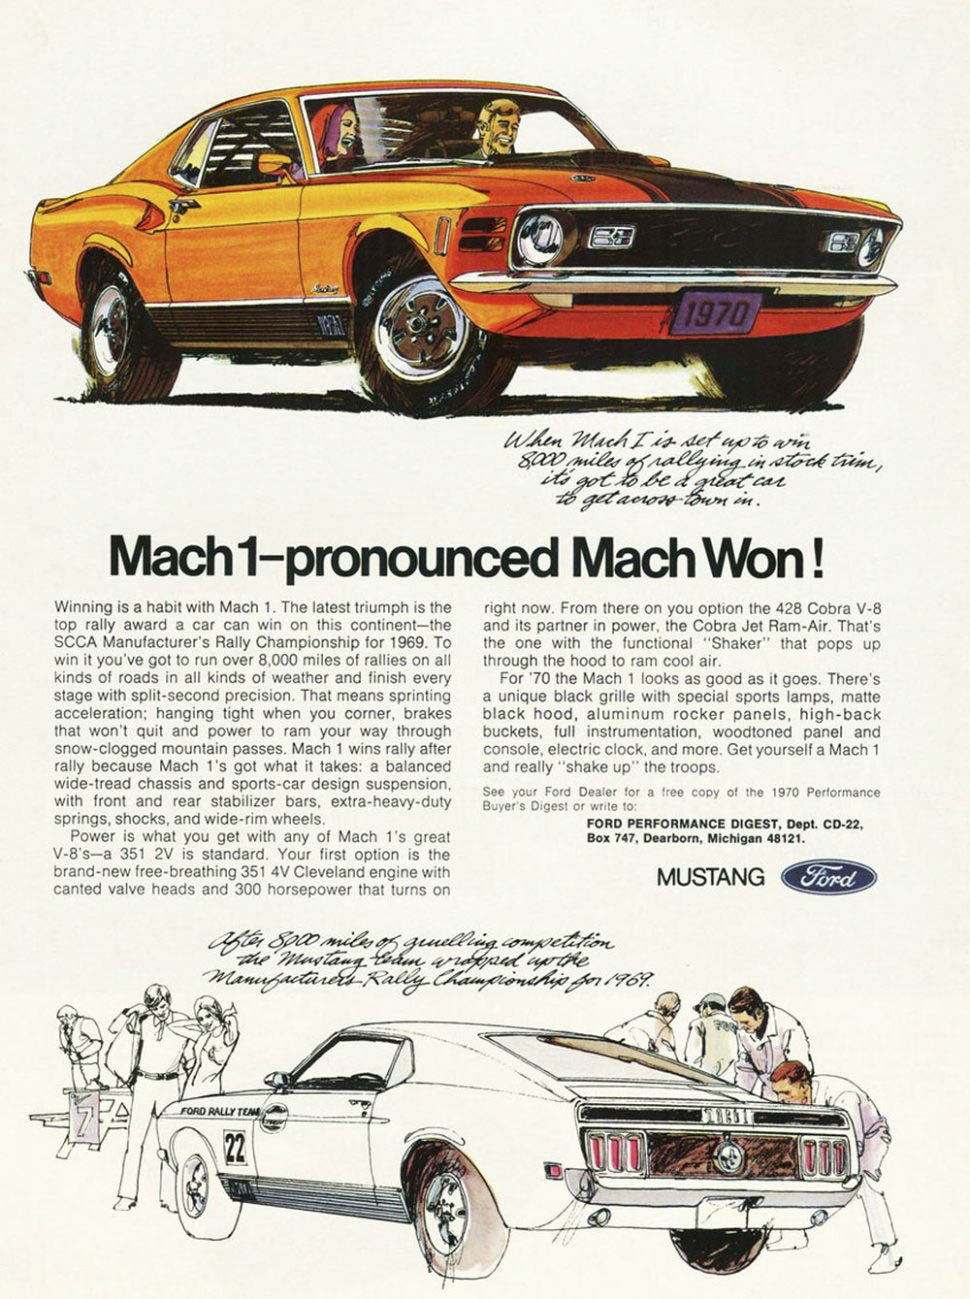 1970 Ford Mustang Mach 1 Rally ad